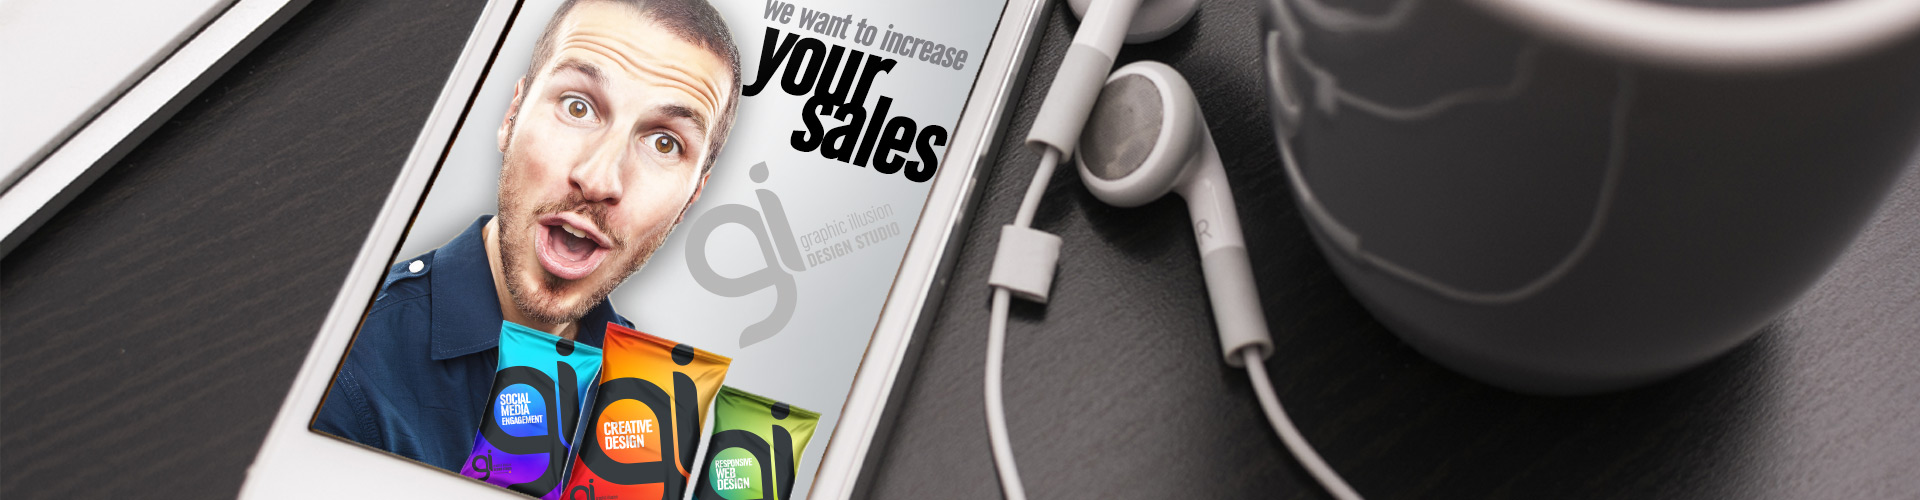 graphicillusion_we_want_to_increase_your_sales